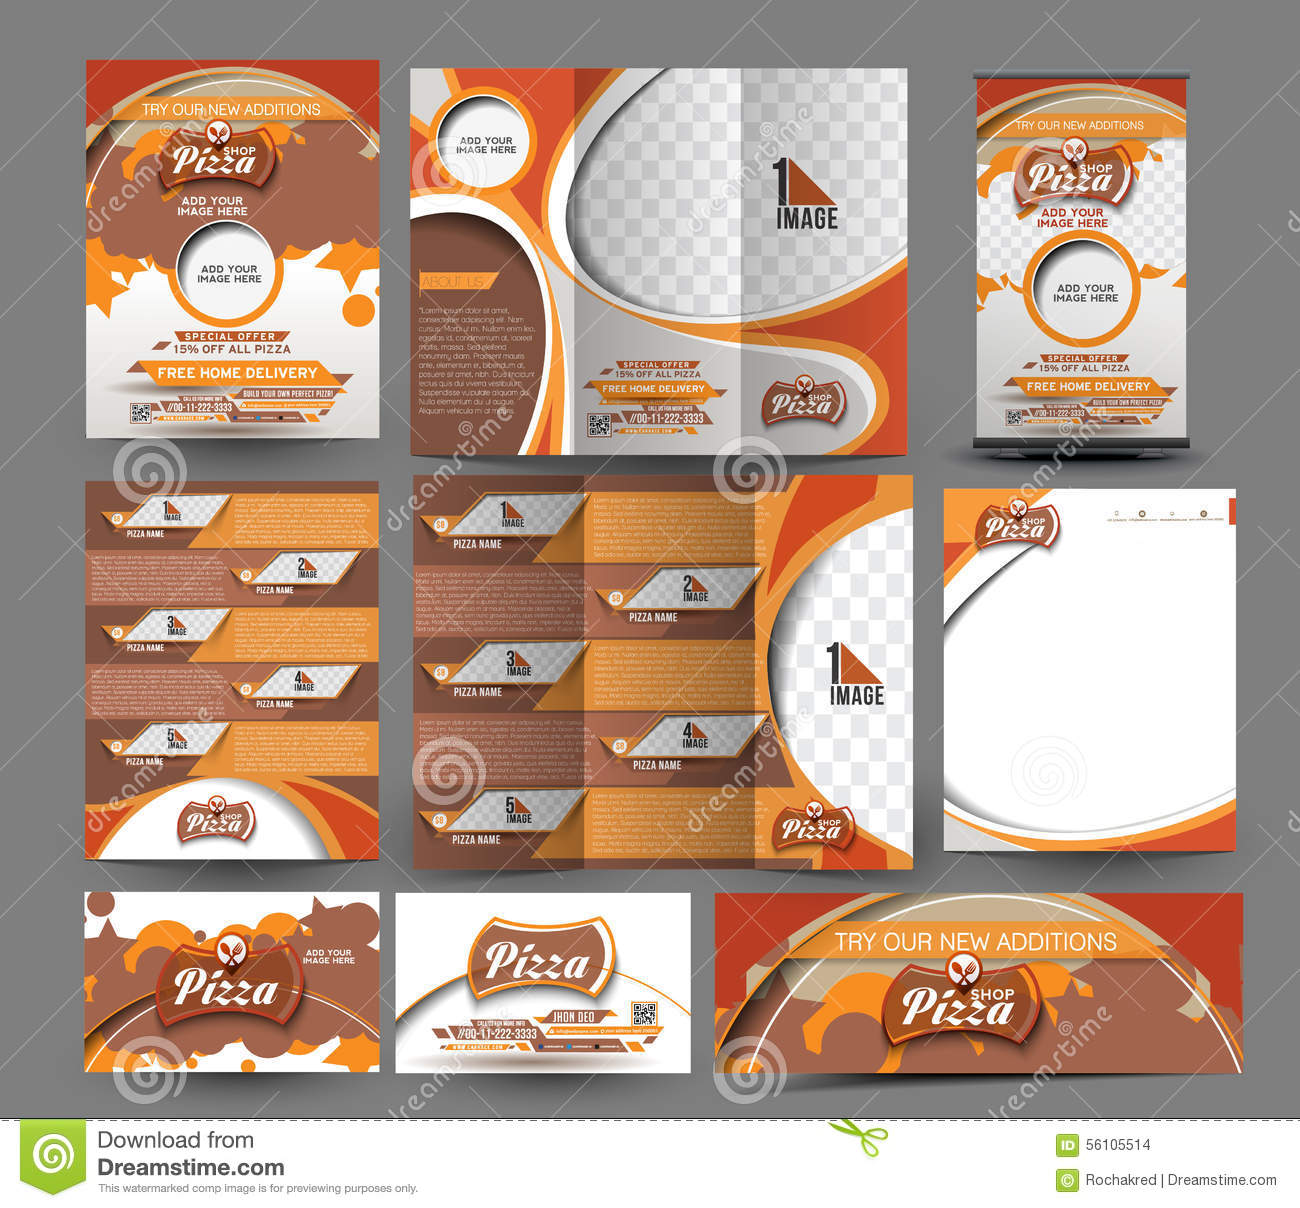 Pizza Shop Business Stationery